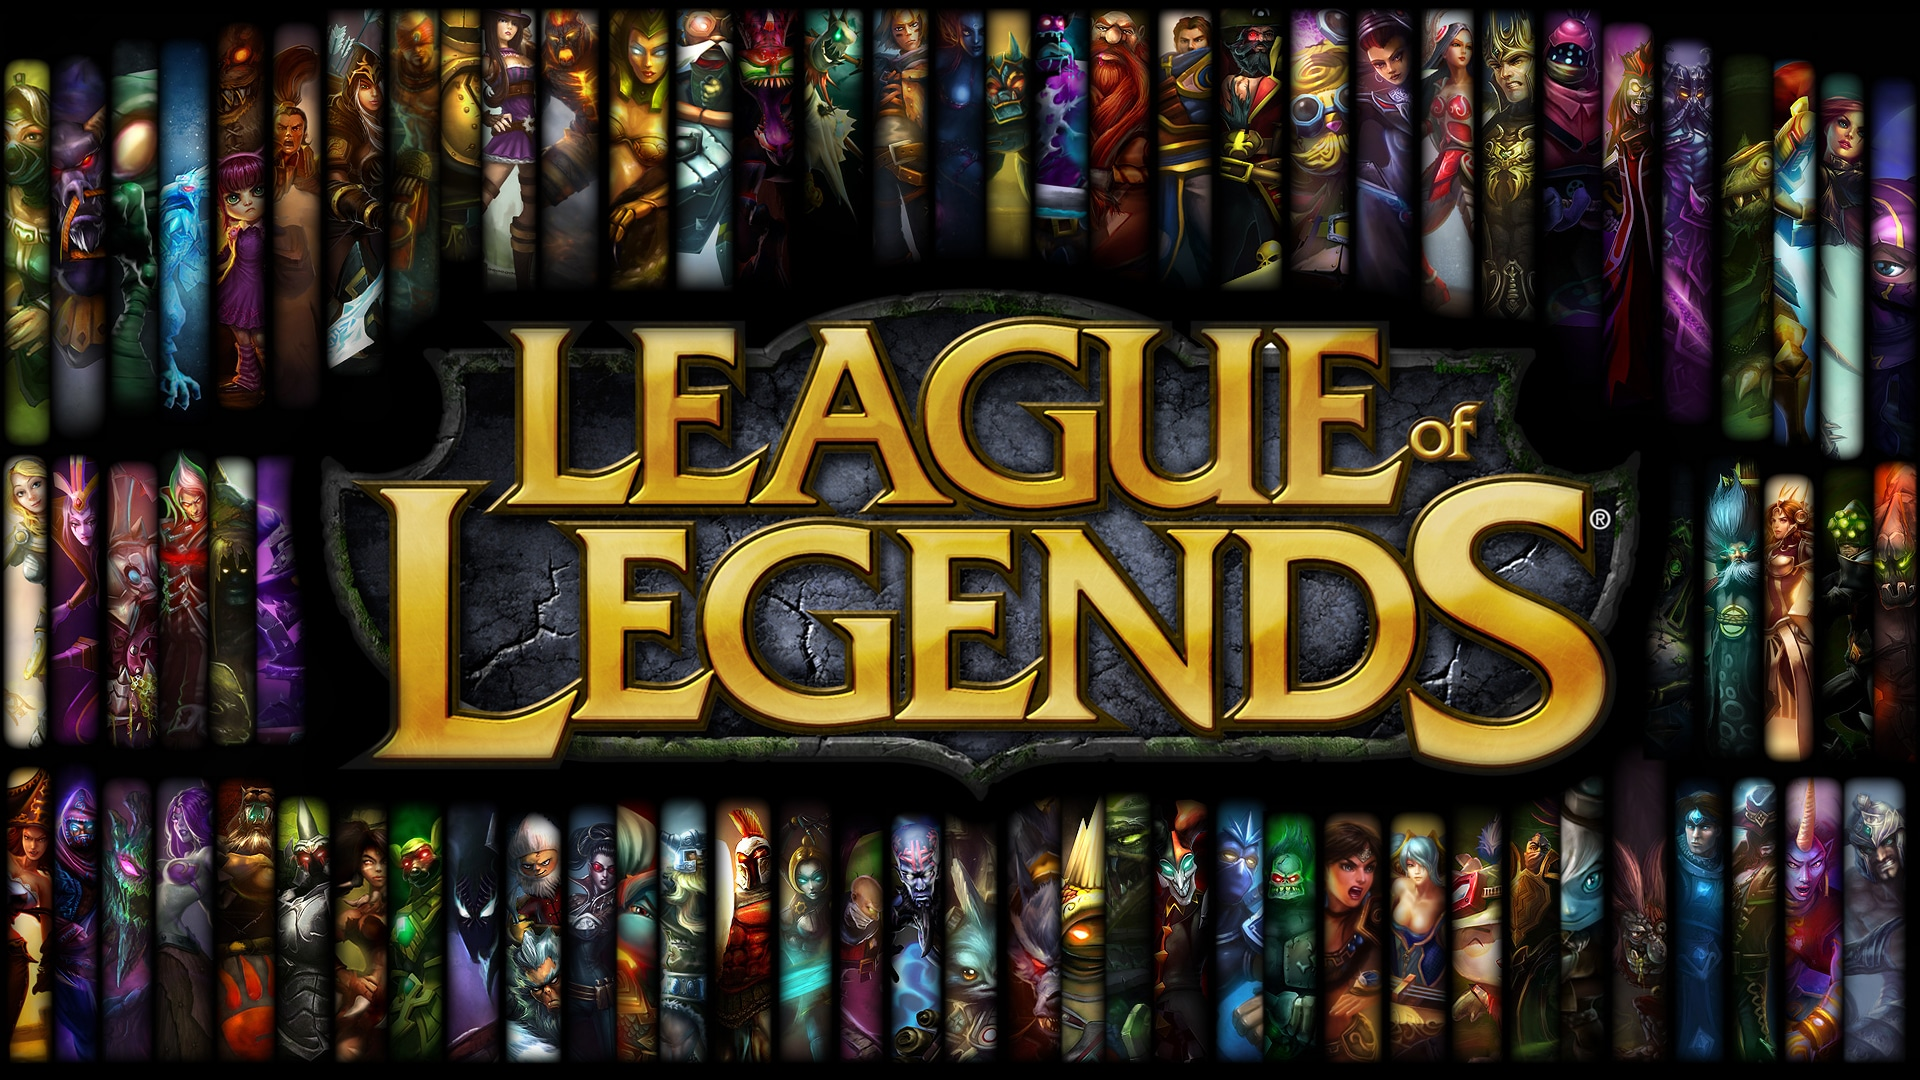 leagueoflegends esports